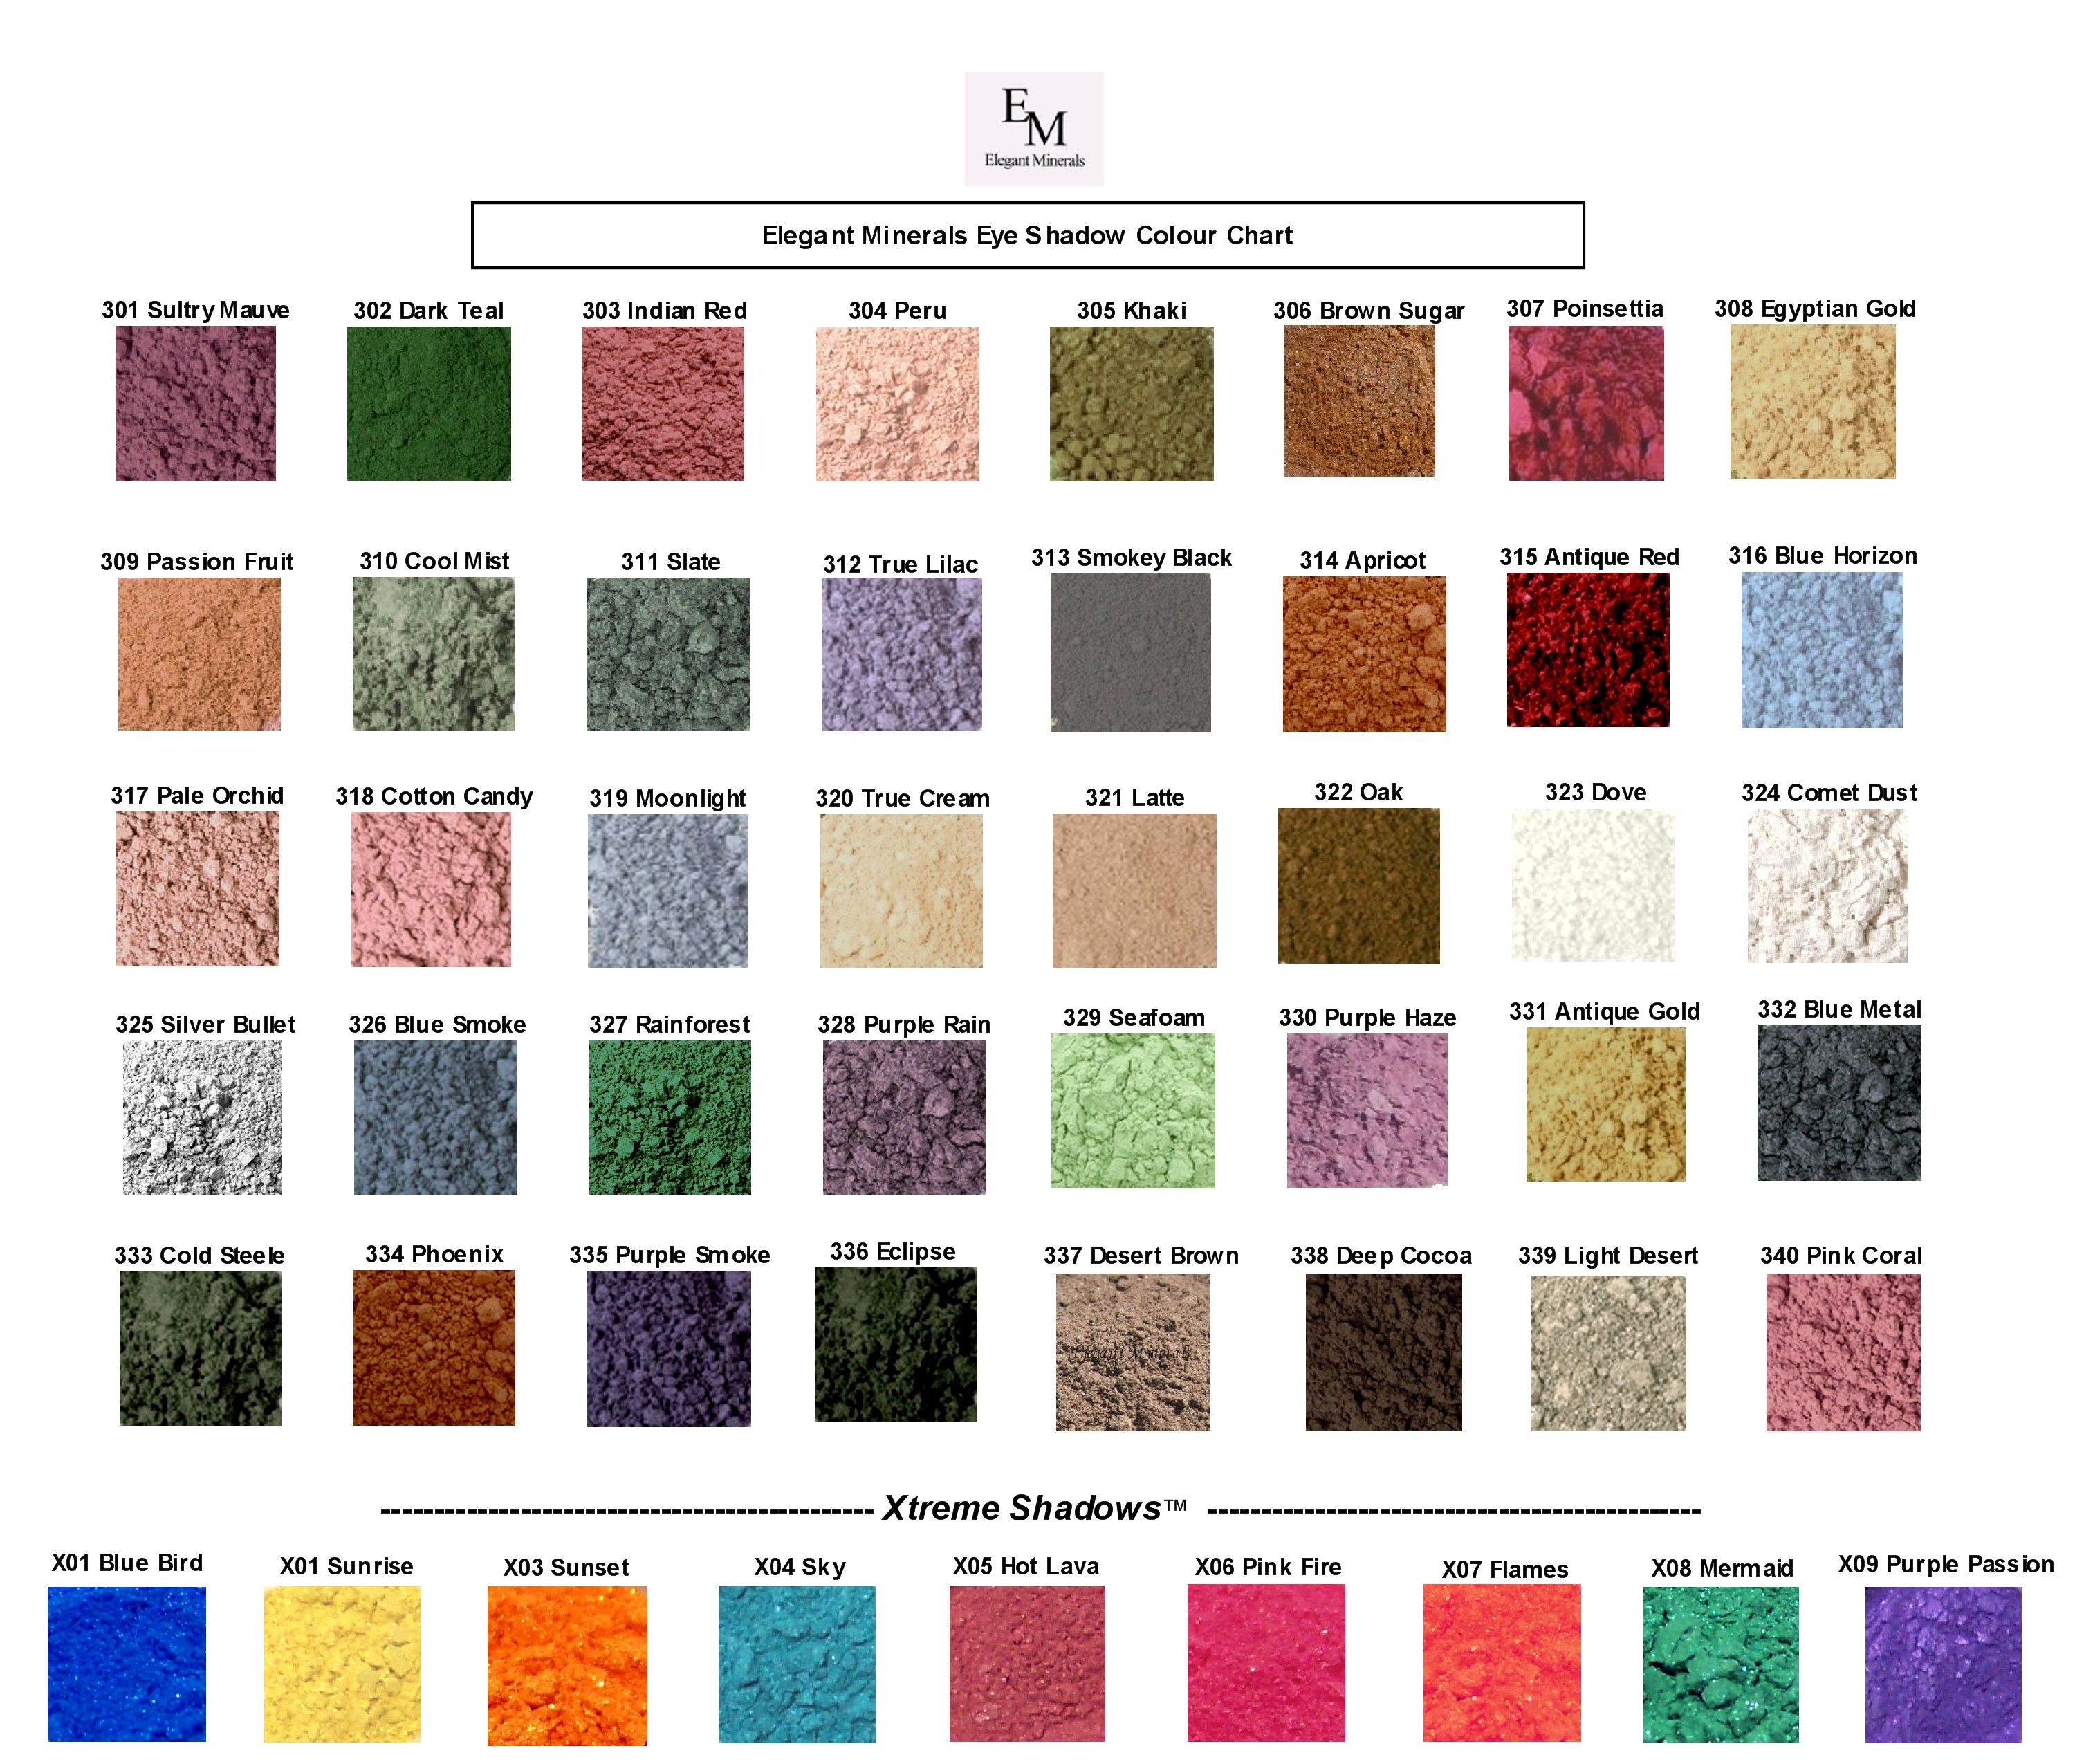 mineral-eye-shadow-color-chart-elegant-minerals-cosmetics.jpg